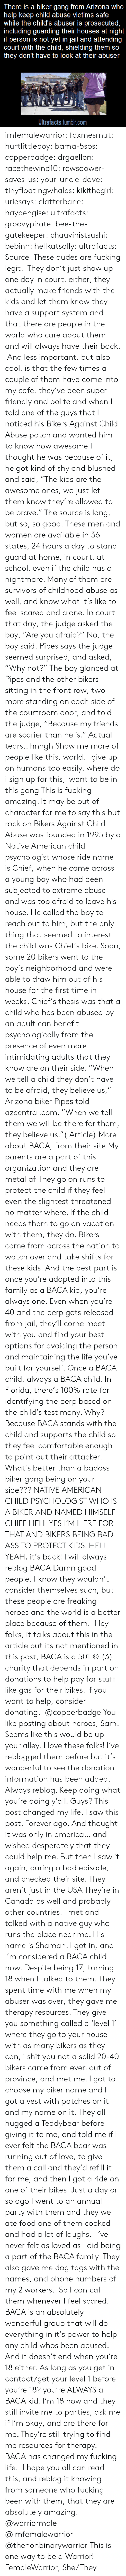 "Af, Being Alone, and America: There is a biker gang from Arizona who  help keep child abuse victims safe  while the child's abuser is prosecuted,  including guarding their houses at night  person is not yet in jail and attending  court with the child, shielding them so  they don't have to look at their abuser  Ultrafacts.tumblr.com imfemalewarrior: faxmesmut:  hurtlittleboy:  bama-5sos:  copperbadge:  drgaellon:  racethewind10:  rowsdower-saves-us:  your-uncle-dave:  tinyfloatingwhales:  kikithegirl:  uriesays:  clatterbane:  haydengise:  ultrafacts:  groovypirate:  bee-the-gatekeeper:  chauvinistsushi:  bebinn:  hellkatsally:  ultrafacts:  Source   These dudes are fucking legit.  They don't just show up one day in court, either, they actually make friends with the kids and let them know they have a support system and that there are people in the world who care about them and will always have their back.  And less important, but also cool, is that the few times a couple of them have come into my cafe, they've been super friendly and polite and when I told one of the guys that I noticed his Bikers Against Child Abuse patch and wanted him to know how awesome I thought he was because of it, he got kind of shy and blushed and said, ""The kids are the awesome ones, we just let them know they're allowed to be brave.""  The source is long, but so, so good. These men and women are available in 36 states, 24 hours a day to stand guard at home, in court, at school, even if the child has a nightmare. Many of them are survivors of childhood abuse as well, and know what it's like to feel scared and alone.  In court that day, the judge asked the boy, ""Are you afraid?"" No, the boy said. Pipes says the judge seemed surprised, and asked, ""Why not?"" The boy glanced at Pipes and the other bikers sitting in the front row, two more standing on each side of the courtroom door, and told the judge, ""Because my friends are scarier than he is.""   Actual tears.. hnngh  Show me more of people like this, world. I give up on humans too easily.  where do i sign up for this,i want to be in this gang    This is fucking amazing. It may be out of character for me to say this but rock on  Bikers Against Child Abuse was founded in 1995 by a Native American child psychologist whose ride name is Chief, when he came across a young boy who had been subjected to extreme abuse and was too afraid to leave his house. He called the boy to reach out to him, but the only thing that seemed to interest the child was Chief's bike. Soon, some 20 bikers went to the boy's neighborhood and were able to draw him out of his house for the first time in weeks. Chief's thesis was that a child who has been abused by an adult can benefit psychologically from the presence of even more intimidating adults that they know are on their side. ""When we tell a child they don't have to be afraid, they believe us,"" Arizona biker Pipes told azcentral.com. ""When we tell them we will be there for them, they believe us.""( Article) More about BACA, from their site  My parents are a part of this organization and they are metal af They go on runs to protect the child if they feel even the slightest threatened no matter where. If the child needs them to go on vacation with them, they do. Bikers come from across the nation to watch over and take shifts for these kids. And the best part is once you're adopted into this family as a BACA kid, you're always one. Even when you're 40 and the perp gets released from jail, they'll come meet with you and find your best options for avoiding the person and maintaining the life you've built for yourself. Once a BACA child, always a BACA child. In Florida, there's 100% rate for identifying the perp based on the child's testimony. Why? Because BACA stands with the child and supports the child so they feel comfortable enough to point out their attacker.  What's better than a badass biker gang being on your side???  NATIVE AMERICAN CHILD PSYCHOLOGIST WHO IS A BIKER AND NAMED HIMSELF CHIEF HELL YES I'M HERE FOR THAT AND BIKERS BEING BAD ASS TO PROTECT KIDS. HELL YEAH.  it's back! I will always reblog BACA  Damn good people.  I know they wouldn't consider themselves such, but these people are freaking heroes and the world is a better place because of them.   Hey folks, it talks about this in the article but its not mentioned in this post, BACA is a 501 © (3) charity that depends in part on donations to help pay for stuff like gas for their bikes. If you want to help, consider donating.   @copperbadge You like posting about heroes, Sam. Seems like this would be up your alley.  I love these folks! I've reblogged them before but it's wonderful to see the donation information has been added.    Always reblog. Keep doing what you're doing y'all.  Guys? This post changed my life. I saw this post. Forever ago. And thought it was only in america… and wished desperately that they could help me. But then I saw it again, during a bad episode, and checked their site. They aren't just in the USA They're in Canada as well and probably other countries. I met and talked with a native guy who runs the place near me. His name is Shaman. I got in, and I'm considered a BACA child now. Despite being 17, turning 18 when I talked to them. They spent time with me when my abuser was over, they gave me therapy resources. They give you something called a 'level 1′ where they go to your house with as many bikers as they can, i shit you not a solid 20-40 bikers came from even out of province, and met me. I got to choose my biker name and I got a vest with patches on it and my name on it. They all hugged a Teddybear before giving it to me, and told me if I ever felt the BACA bear was running out of love, to give them a call and they'd refill it for me, and then I got a ride on one of their bikes. Just a day or so ago I went to an annual party with them and they we ate food one of them cooked and had a lot of laughs.  I've never felt as loved as I did being a part of the BACA family. They also gave me dog tags with the names, and phone numbers of my 2 workers.  So I can call them whenever I feel scared.  BACA is an absolutely wonderful group that will do everything in it's power to help any child whos been abused.  And it doesn't end when you're 18 either. As long as you get in contact/get your level 1 before you're 18? you're ALWAYS a BACA kid. I'm 18 now and they still invite me to parties, ask me if I'm okay, and are there for me. They're still trying to find me resources for therapy.  BACA has changed my fucking life.  I hope you all can read this, and reblog it knowing from someone who fucking been with them, that they are absolutely amazing.   @warriormale @imfemalewarrior @thenonbinarywarrior  This is one way to be a Warrior!  -FemaleWarrior, She/They"